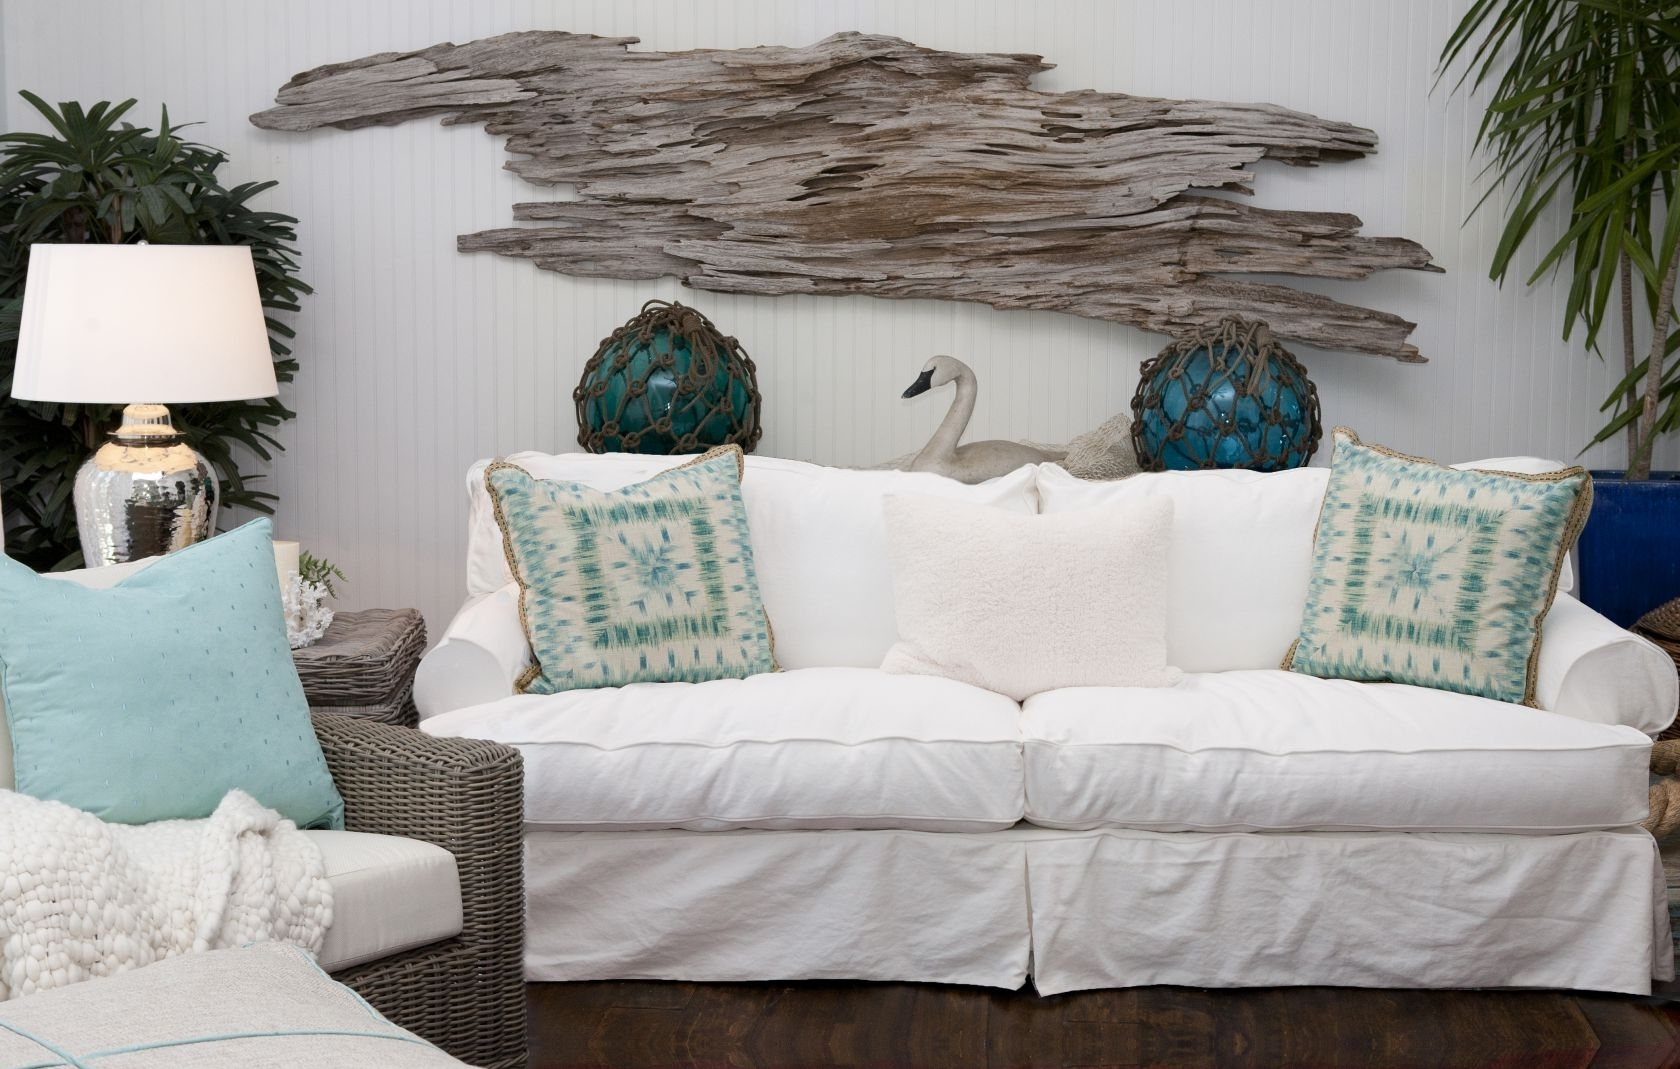 Relaxbeautyspa Intended For Large Coastal Wall Art (View 10 of 15)